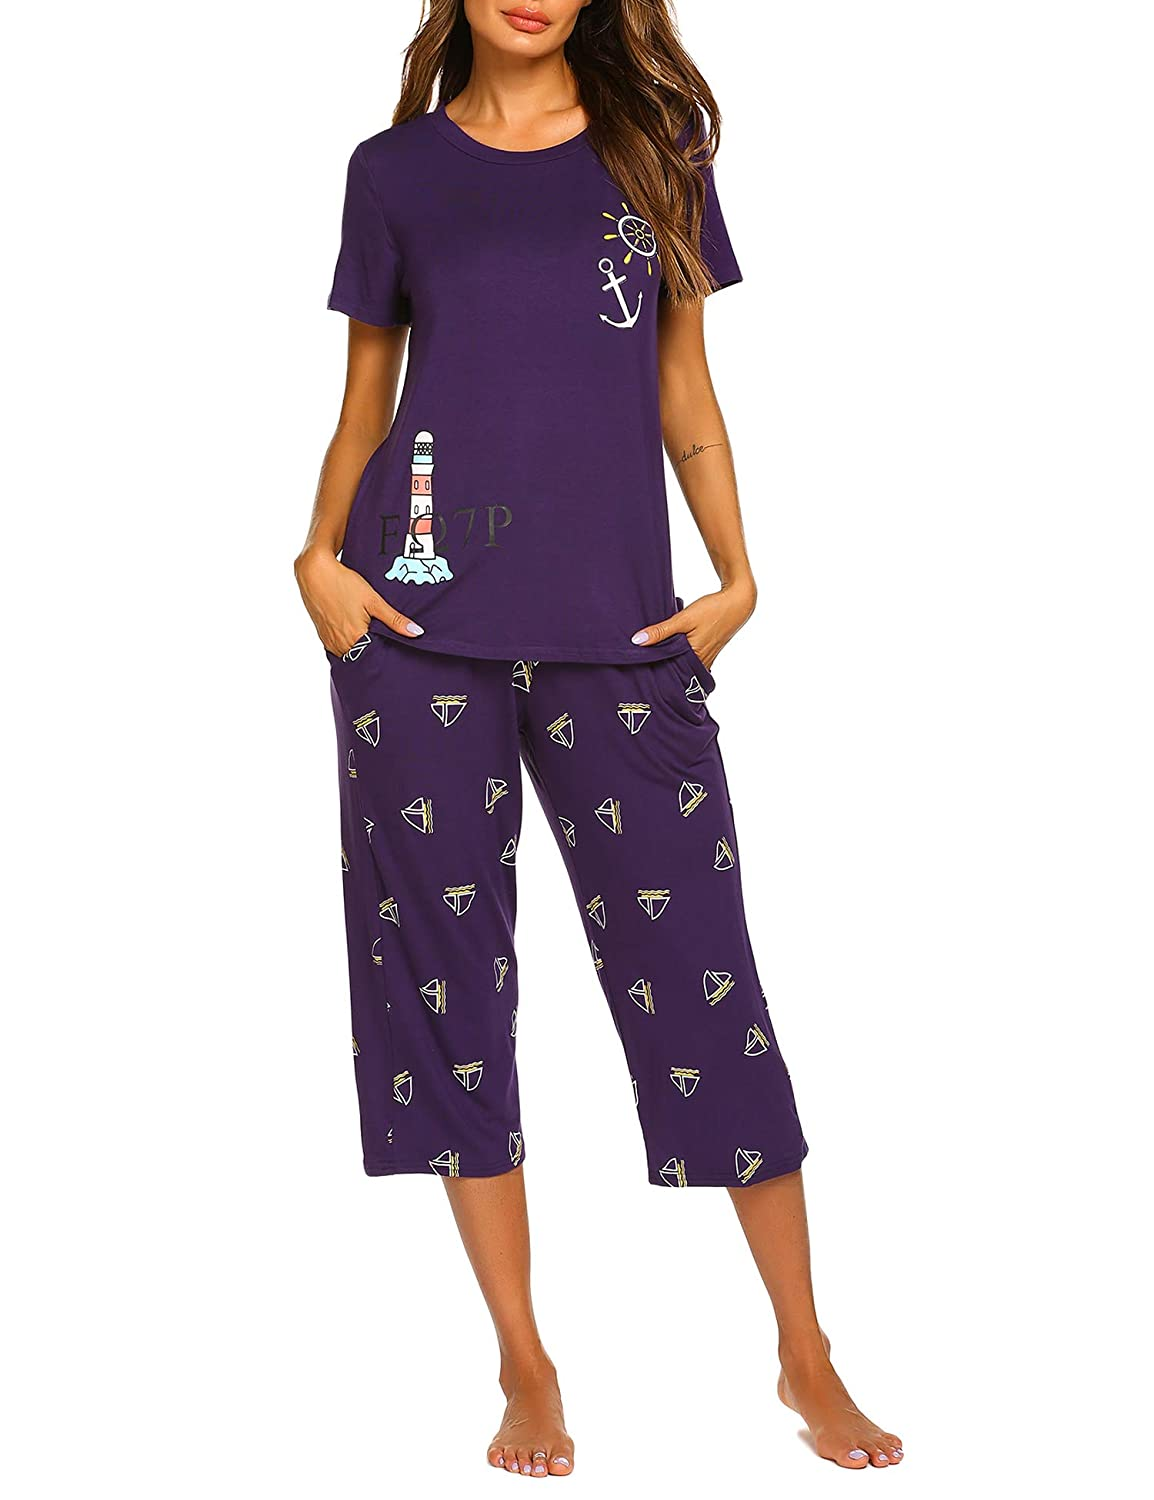 Patternpurple MAXMODA Women's Soft Pajama Set Sleepwear Short Sleeve Shirt and Capri Long Pants Sleepwear